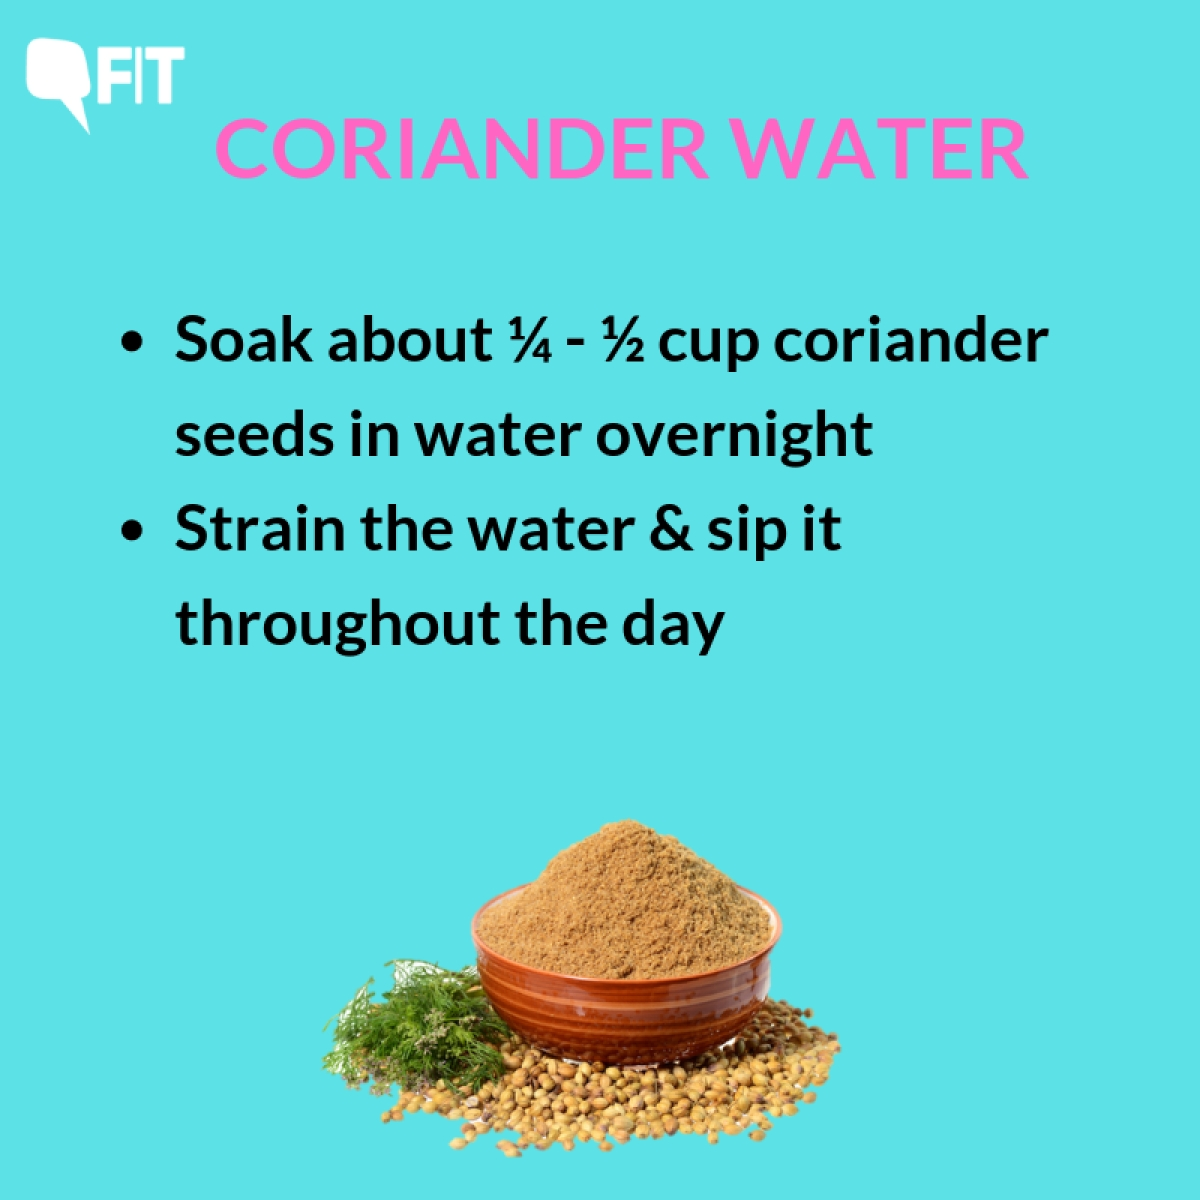 health benefits of coriander seeds: from digestion to